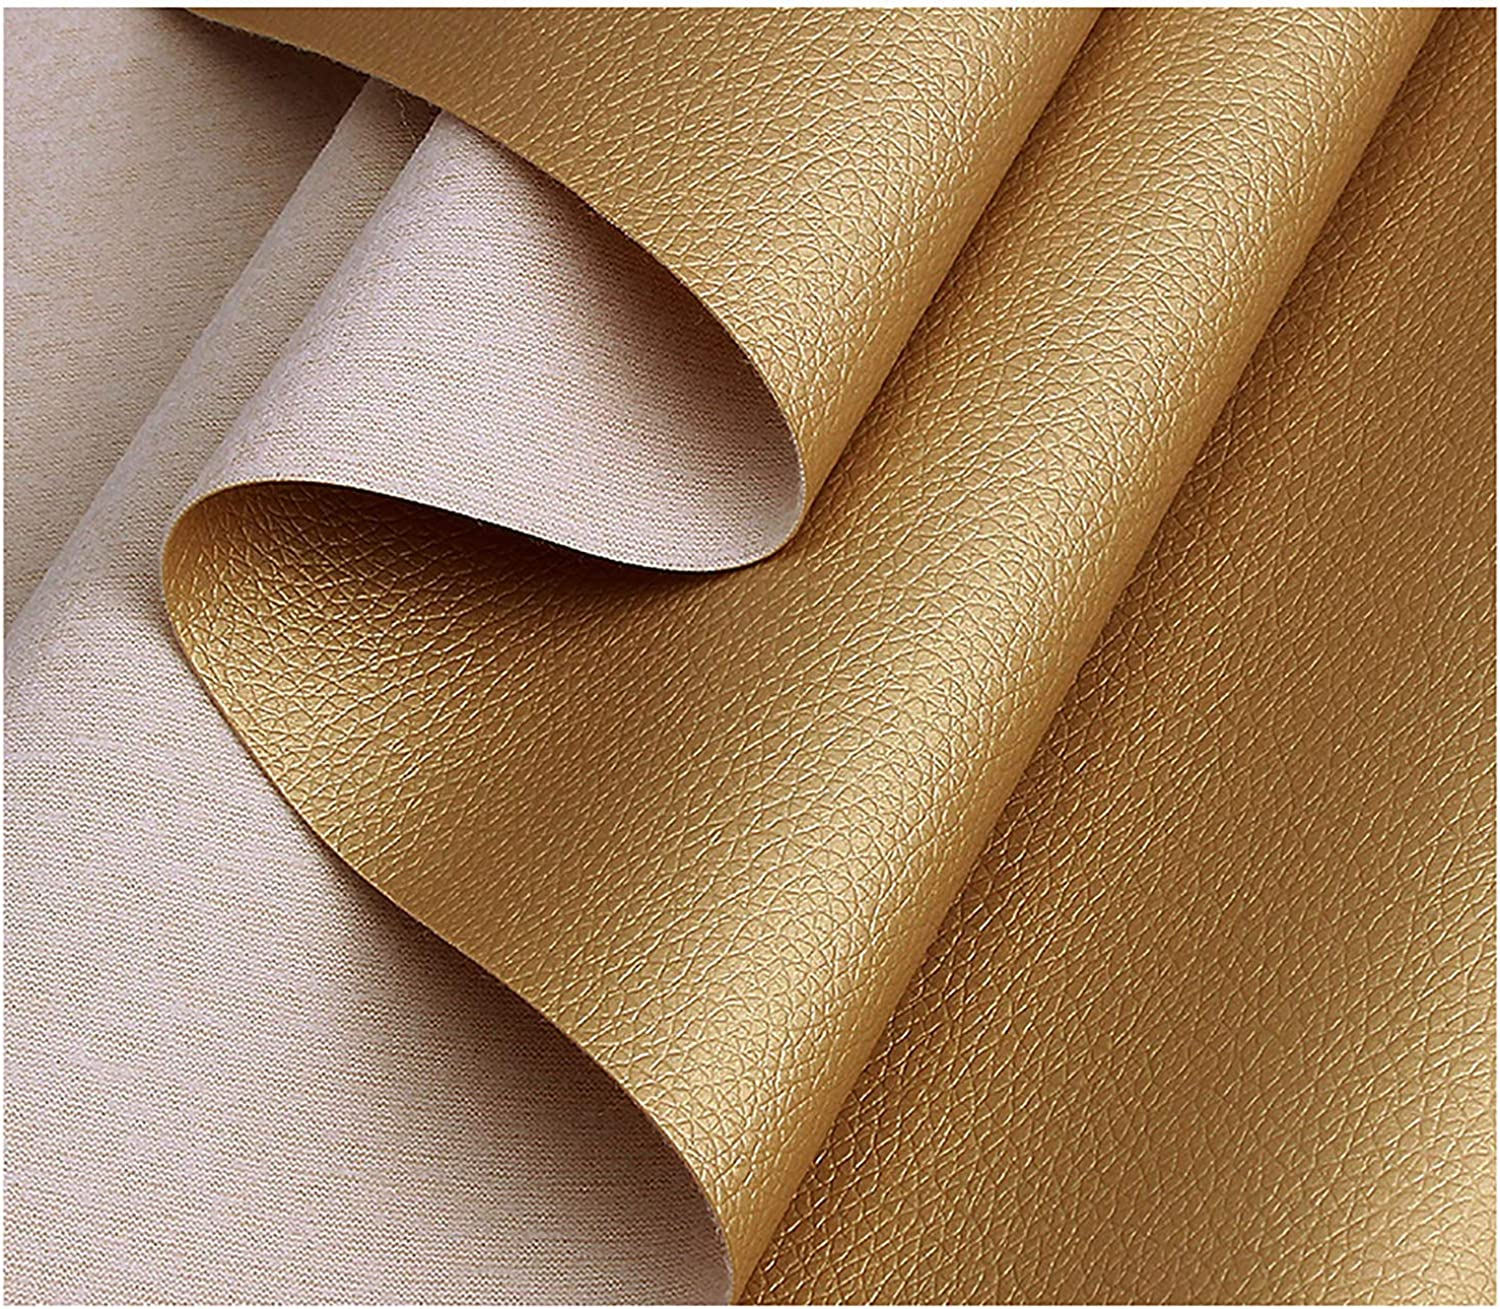 Faux Leather Sheets Fabric Upholstery for List price Ranking TOP19 Material